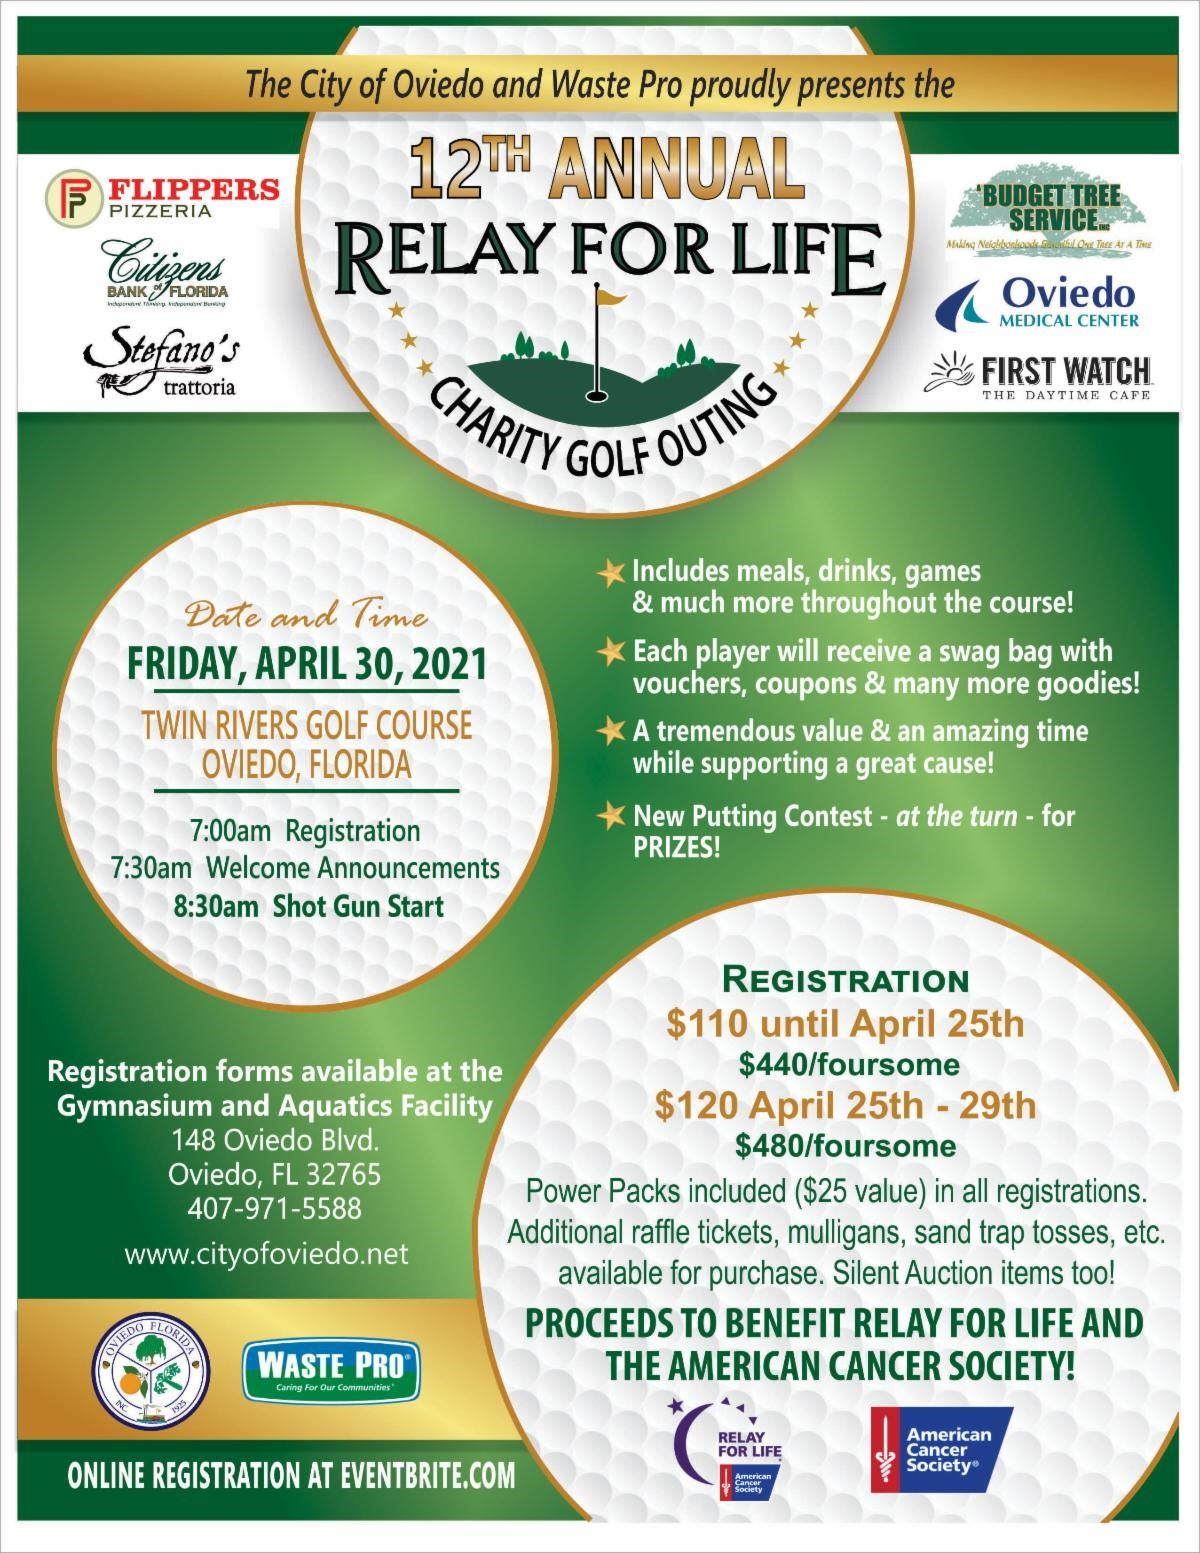 Relay for Life Golf Outing Friday, April 30 - register at gymnasium, aquatics facility or eventbrite